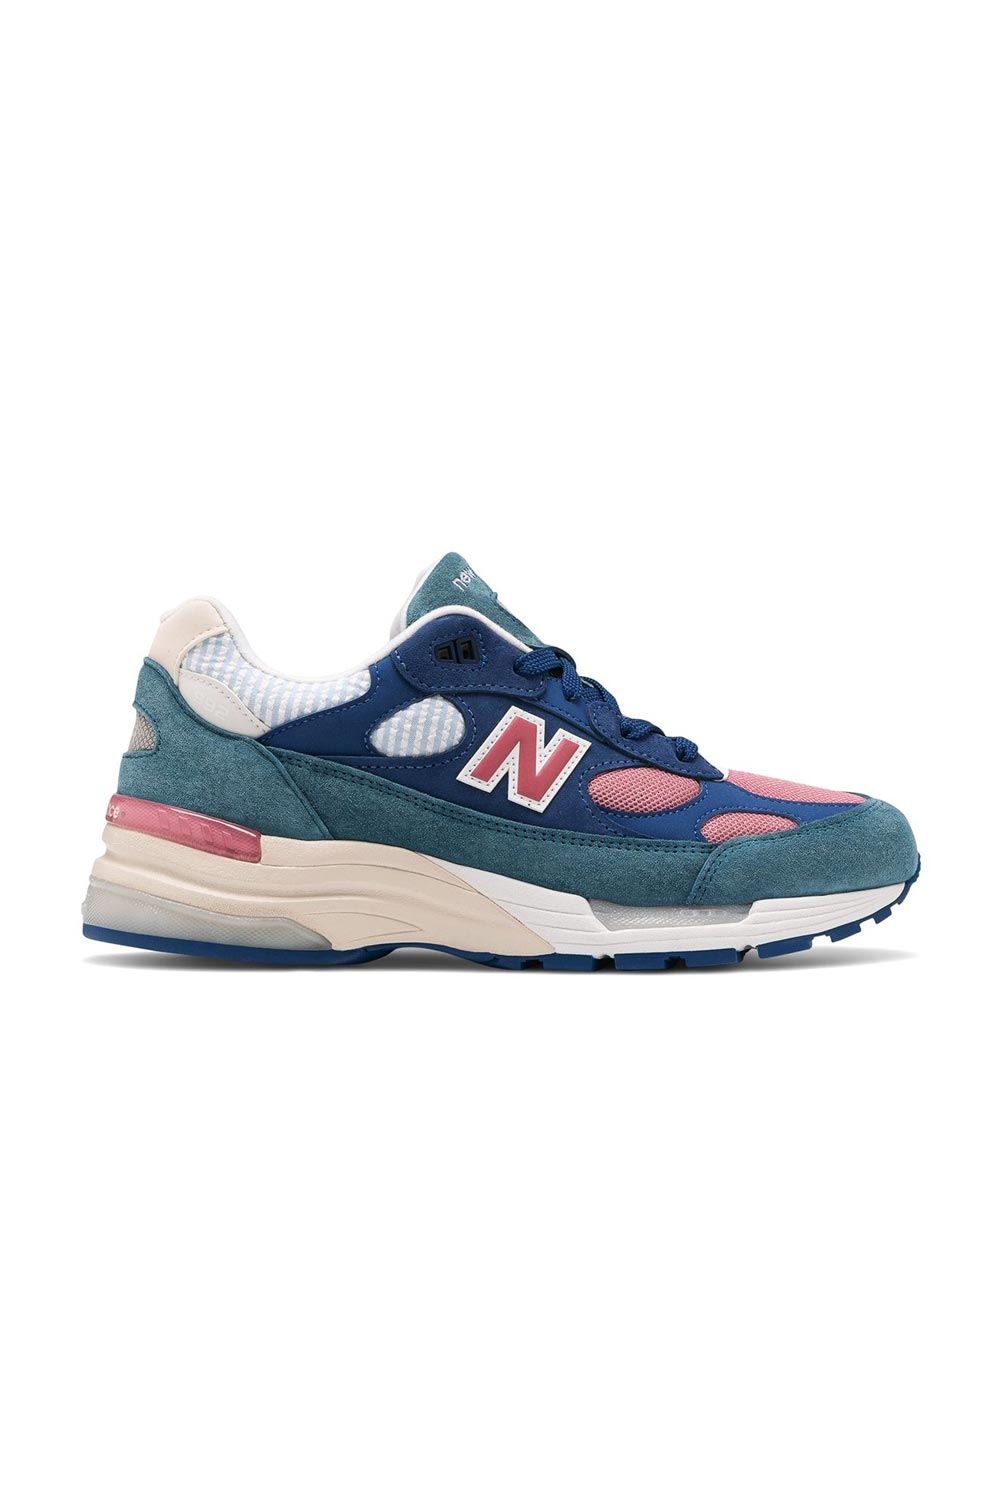 New Balance 992 Blue Teal Rose